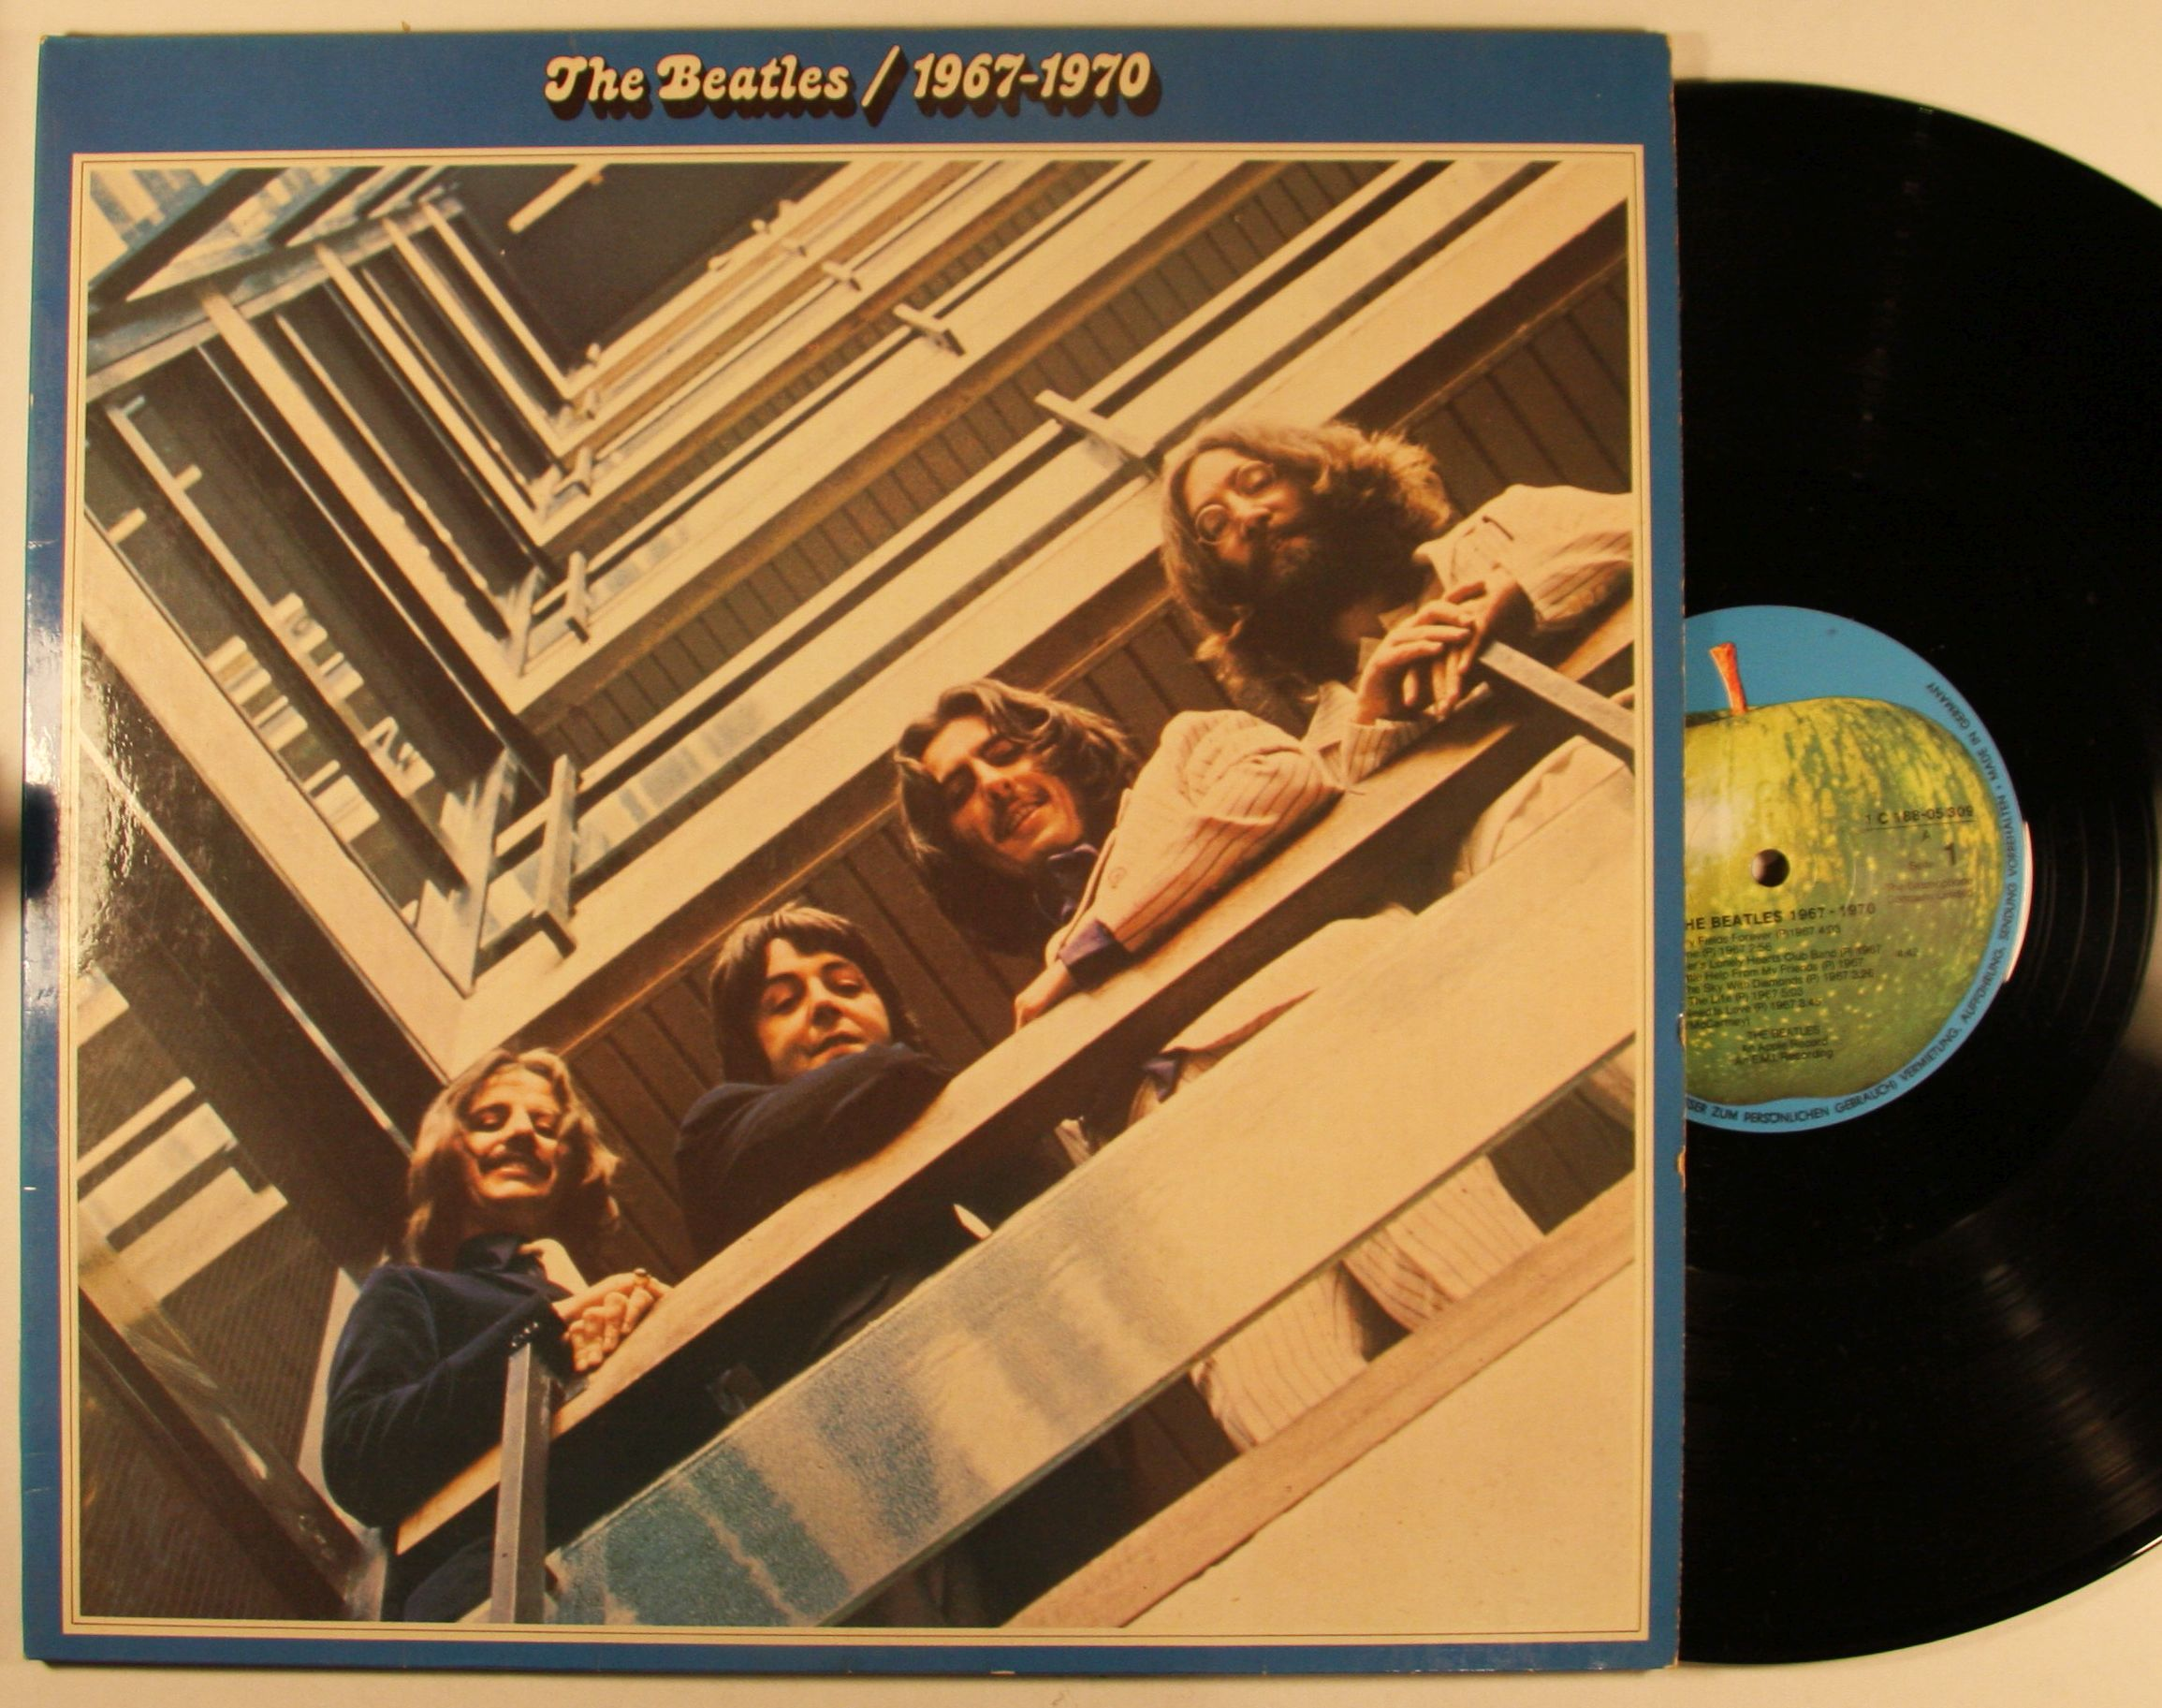 Beatles - 1967-1970 LP